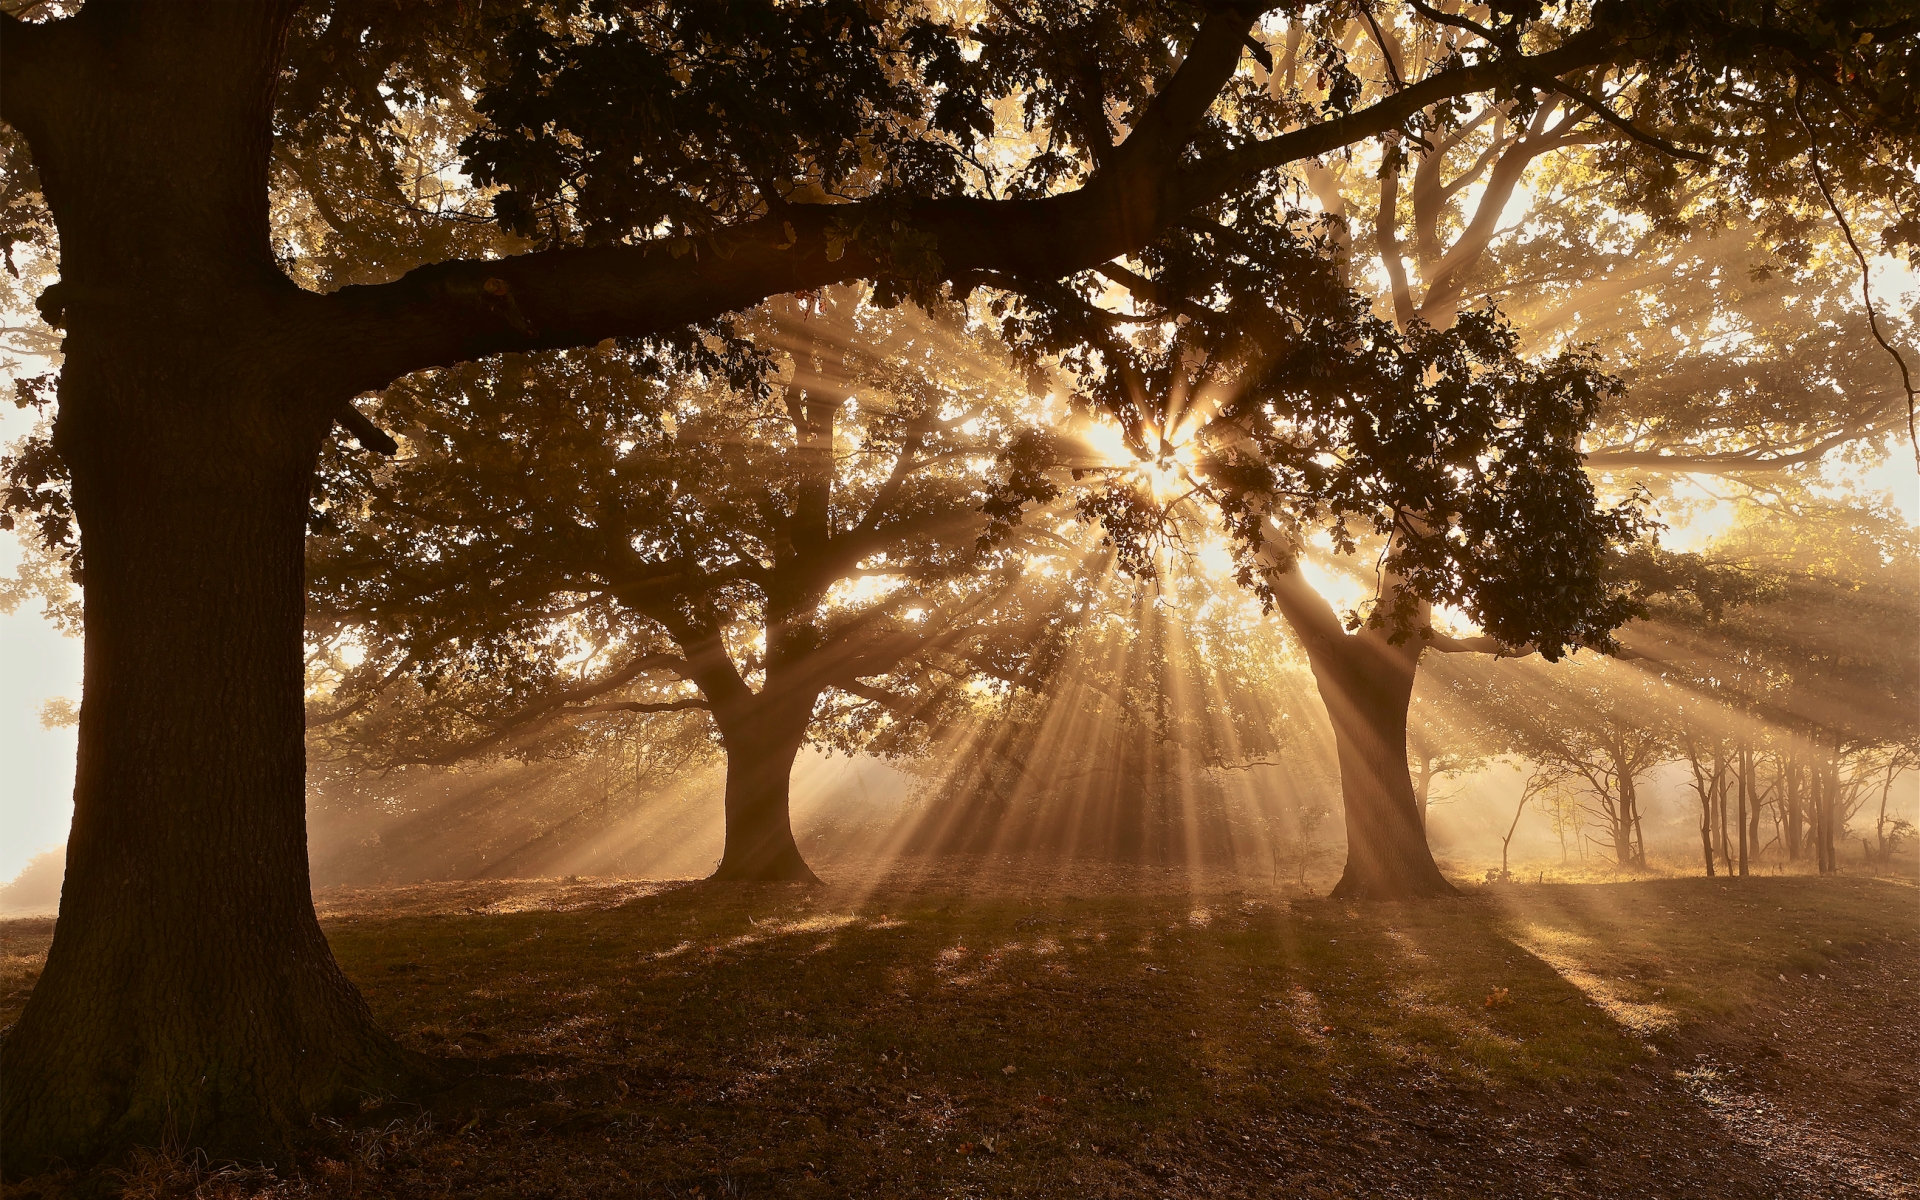 Sunbeam Wallpapers and Background Images